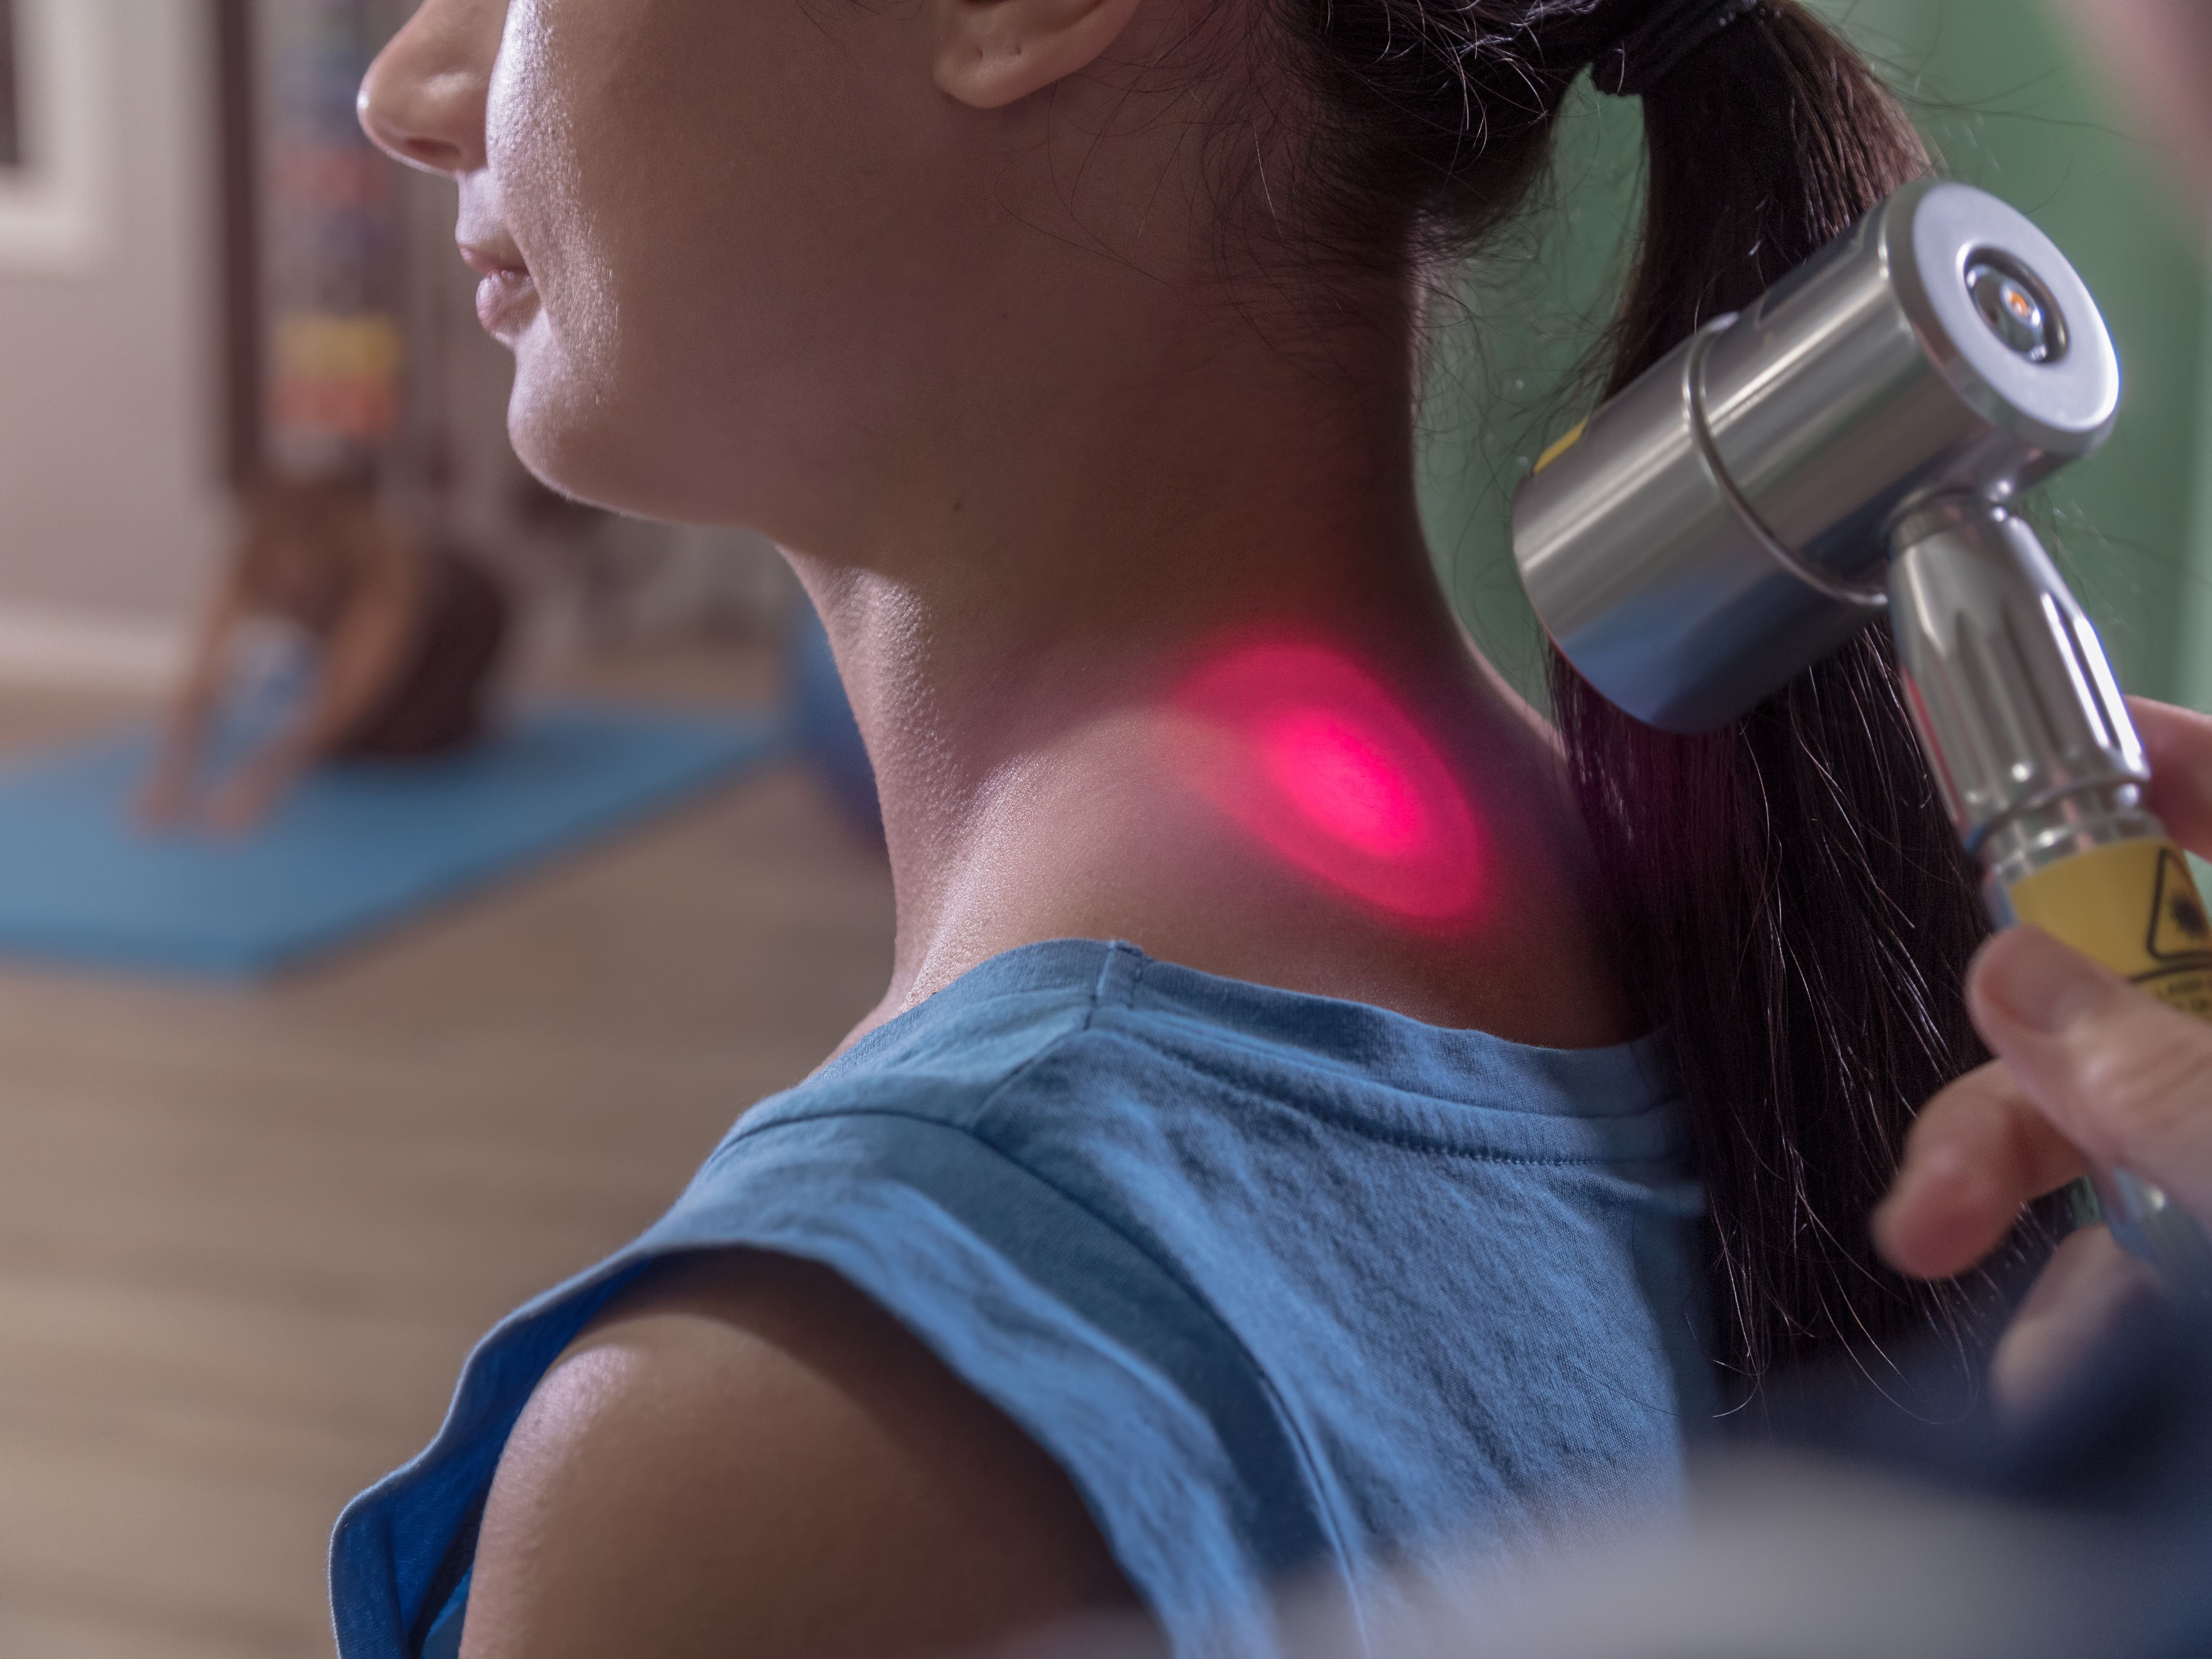 MEDICAL_LASER_THERAPY_055663_XL